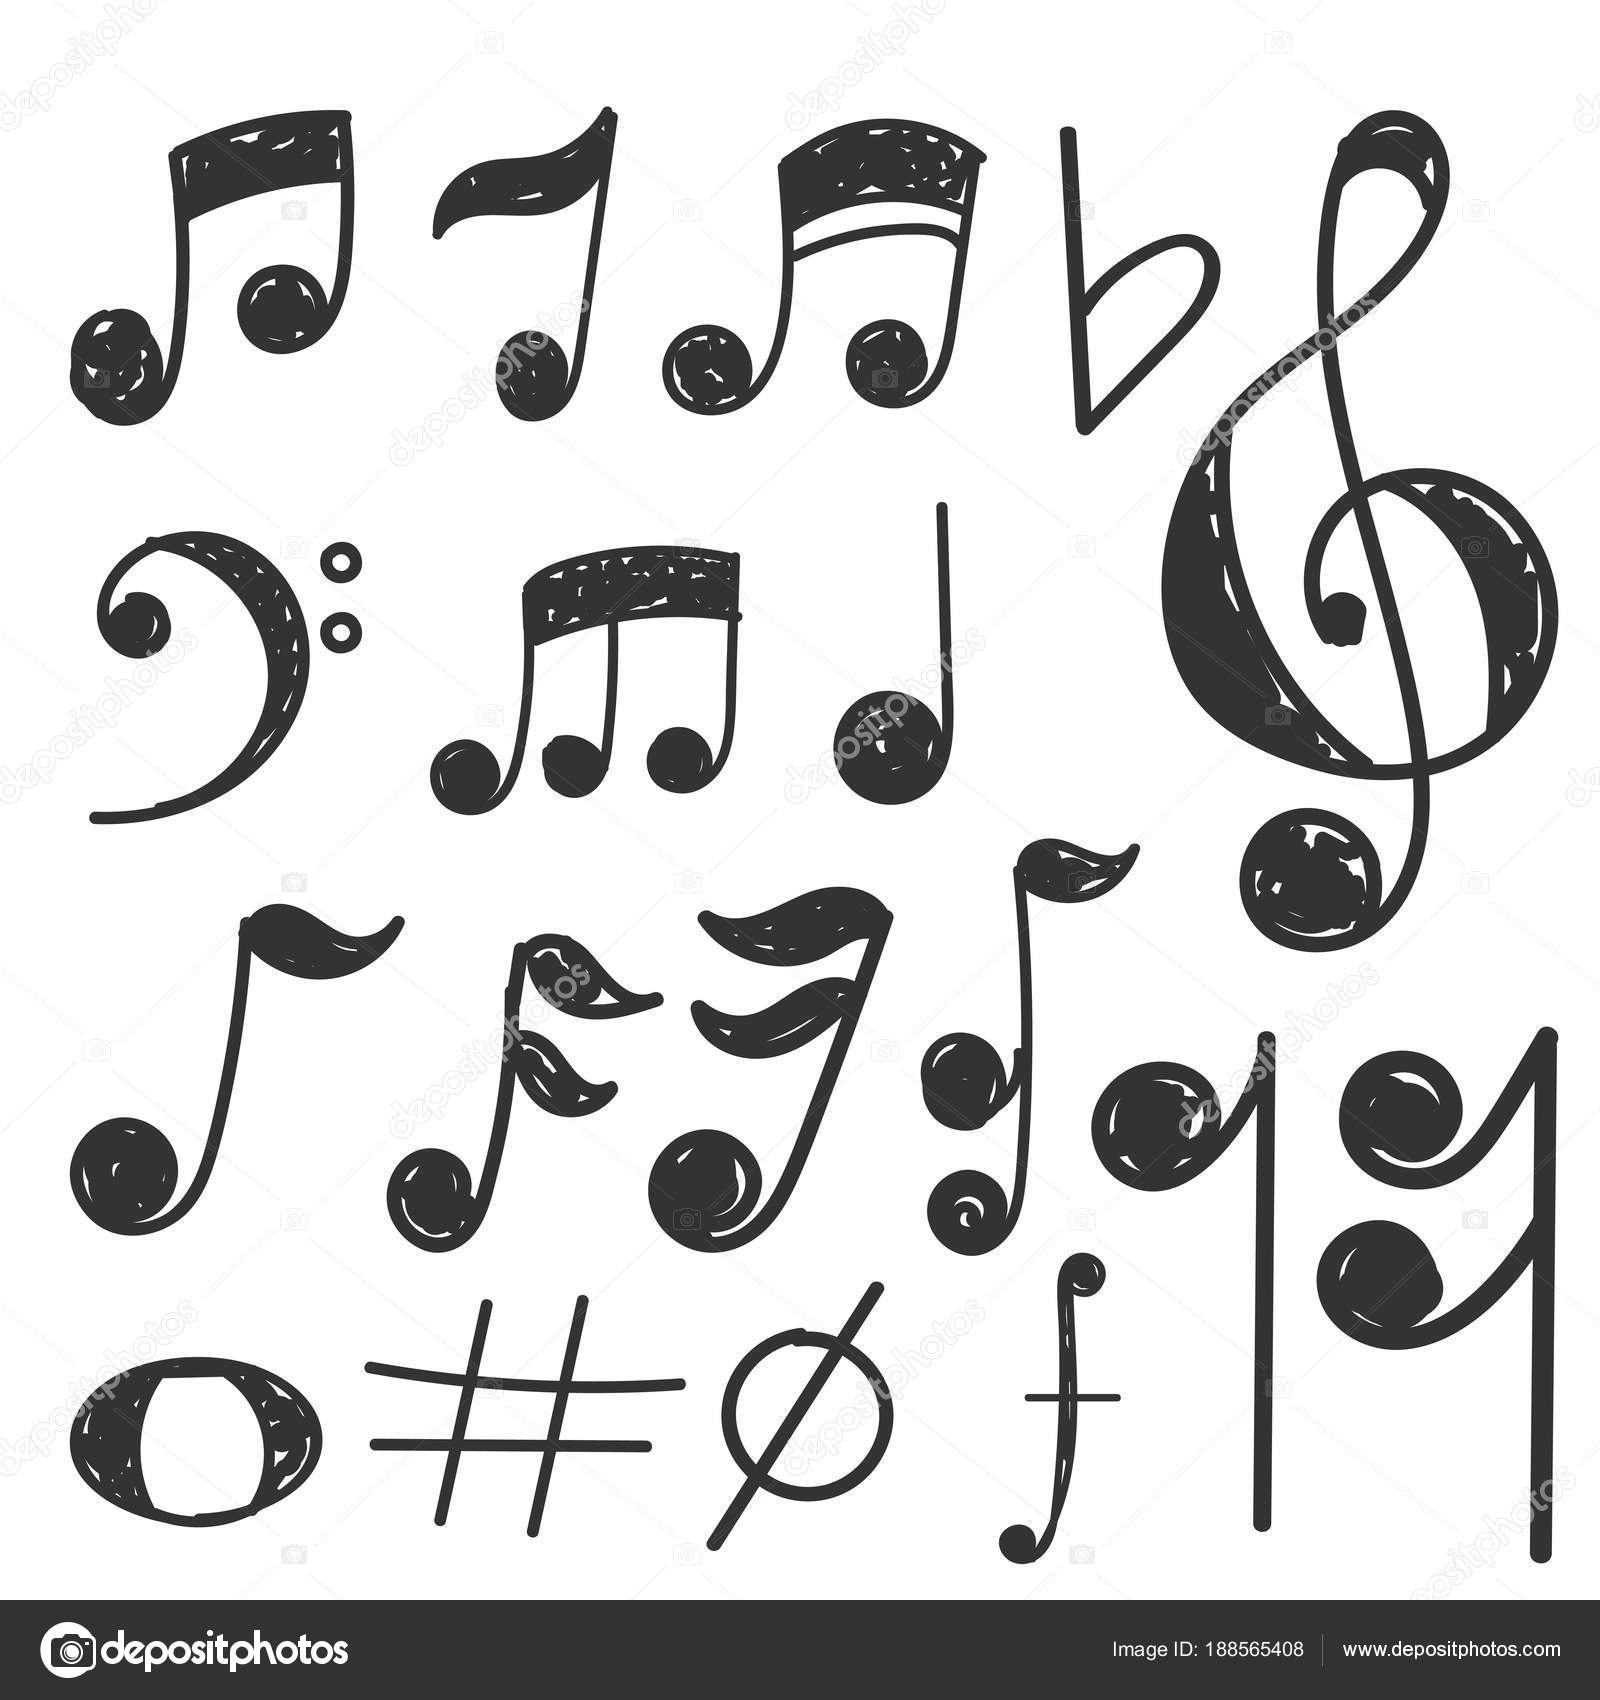 Music Notes To Draw Music Note Hand Draw Set Concept Eps 10 Stock Vector C Nikola82 188565408